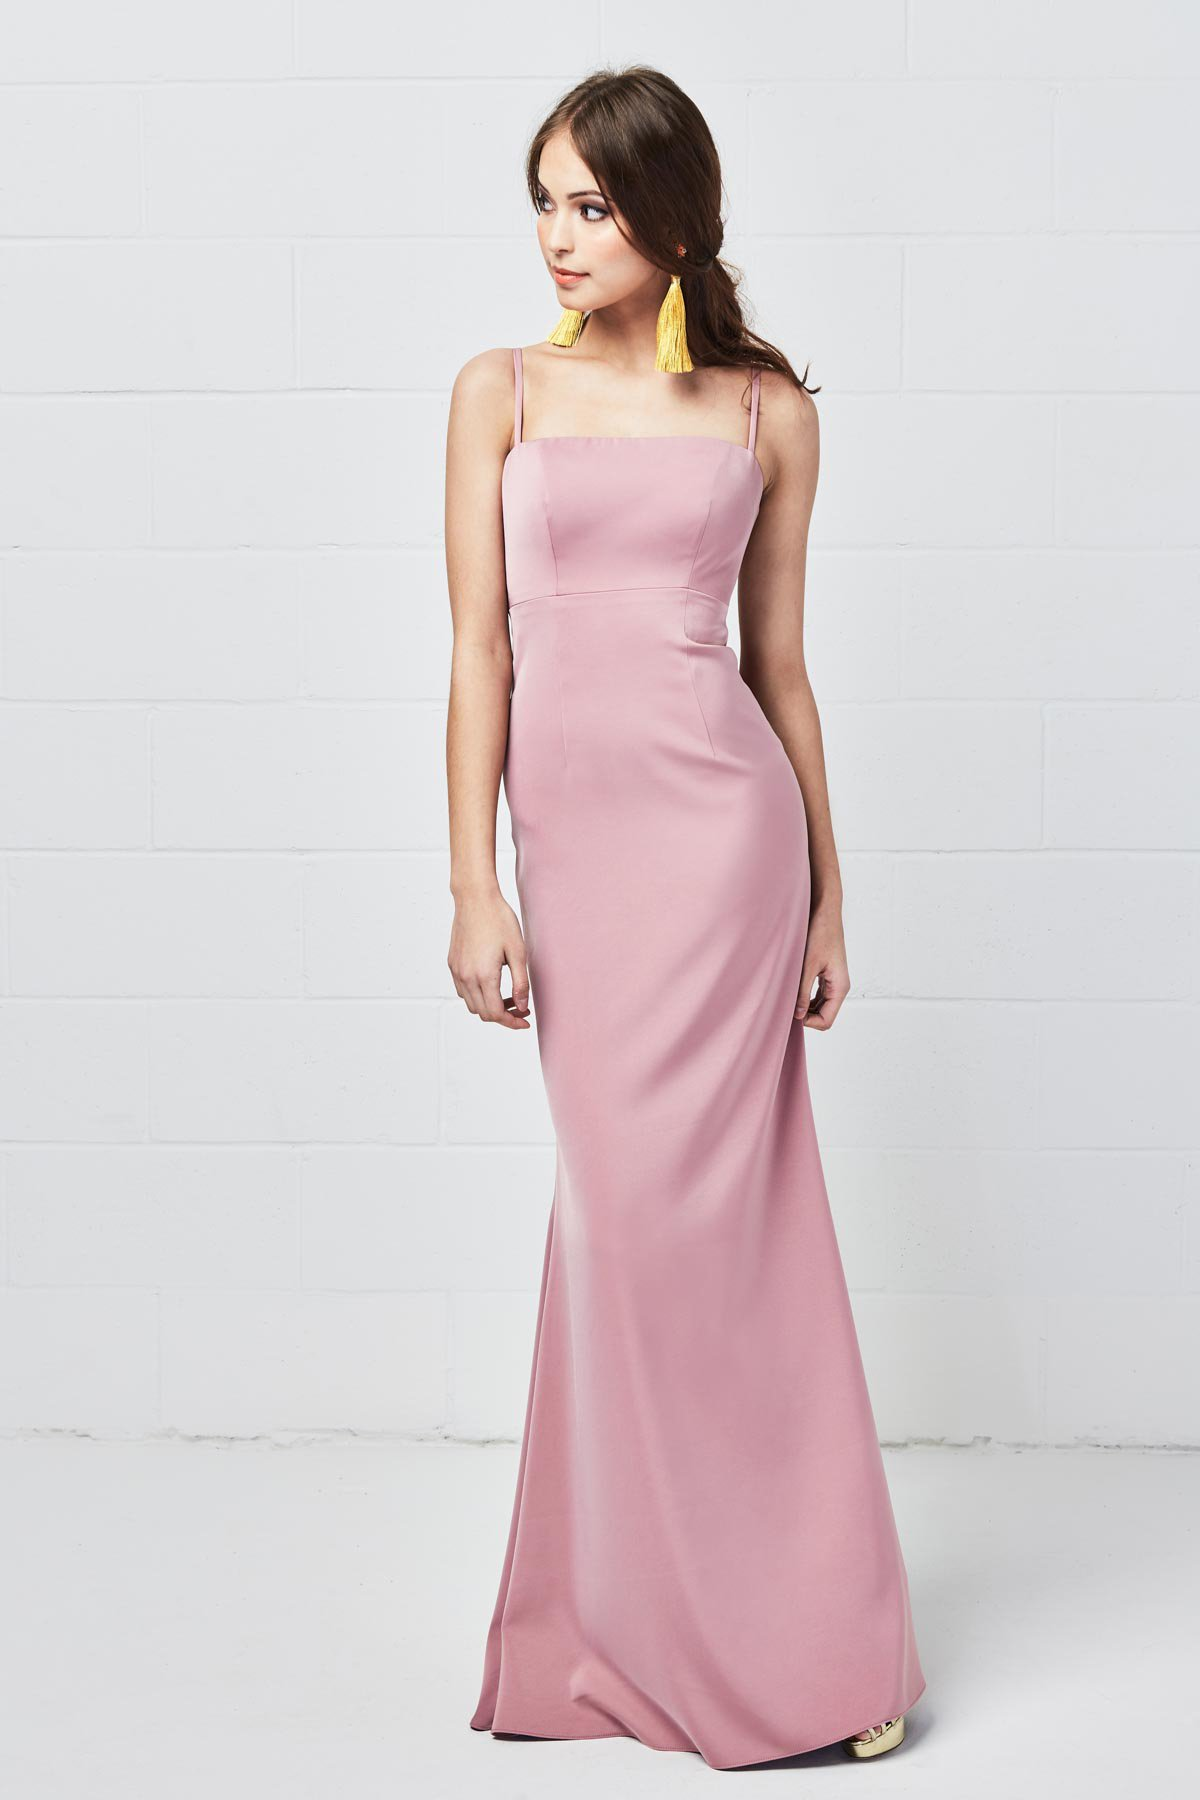 Watters Bridesmaids Style 5800 Mellie in Morganite blush pink color bellessa stretch crepe at Gilded Social